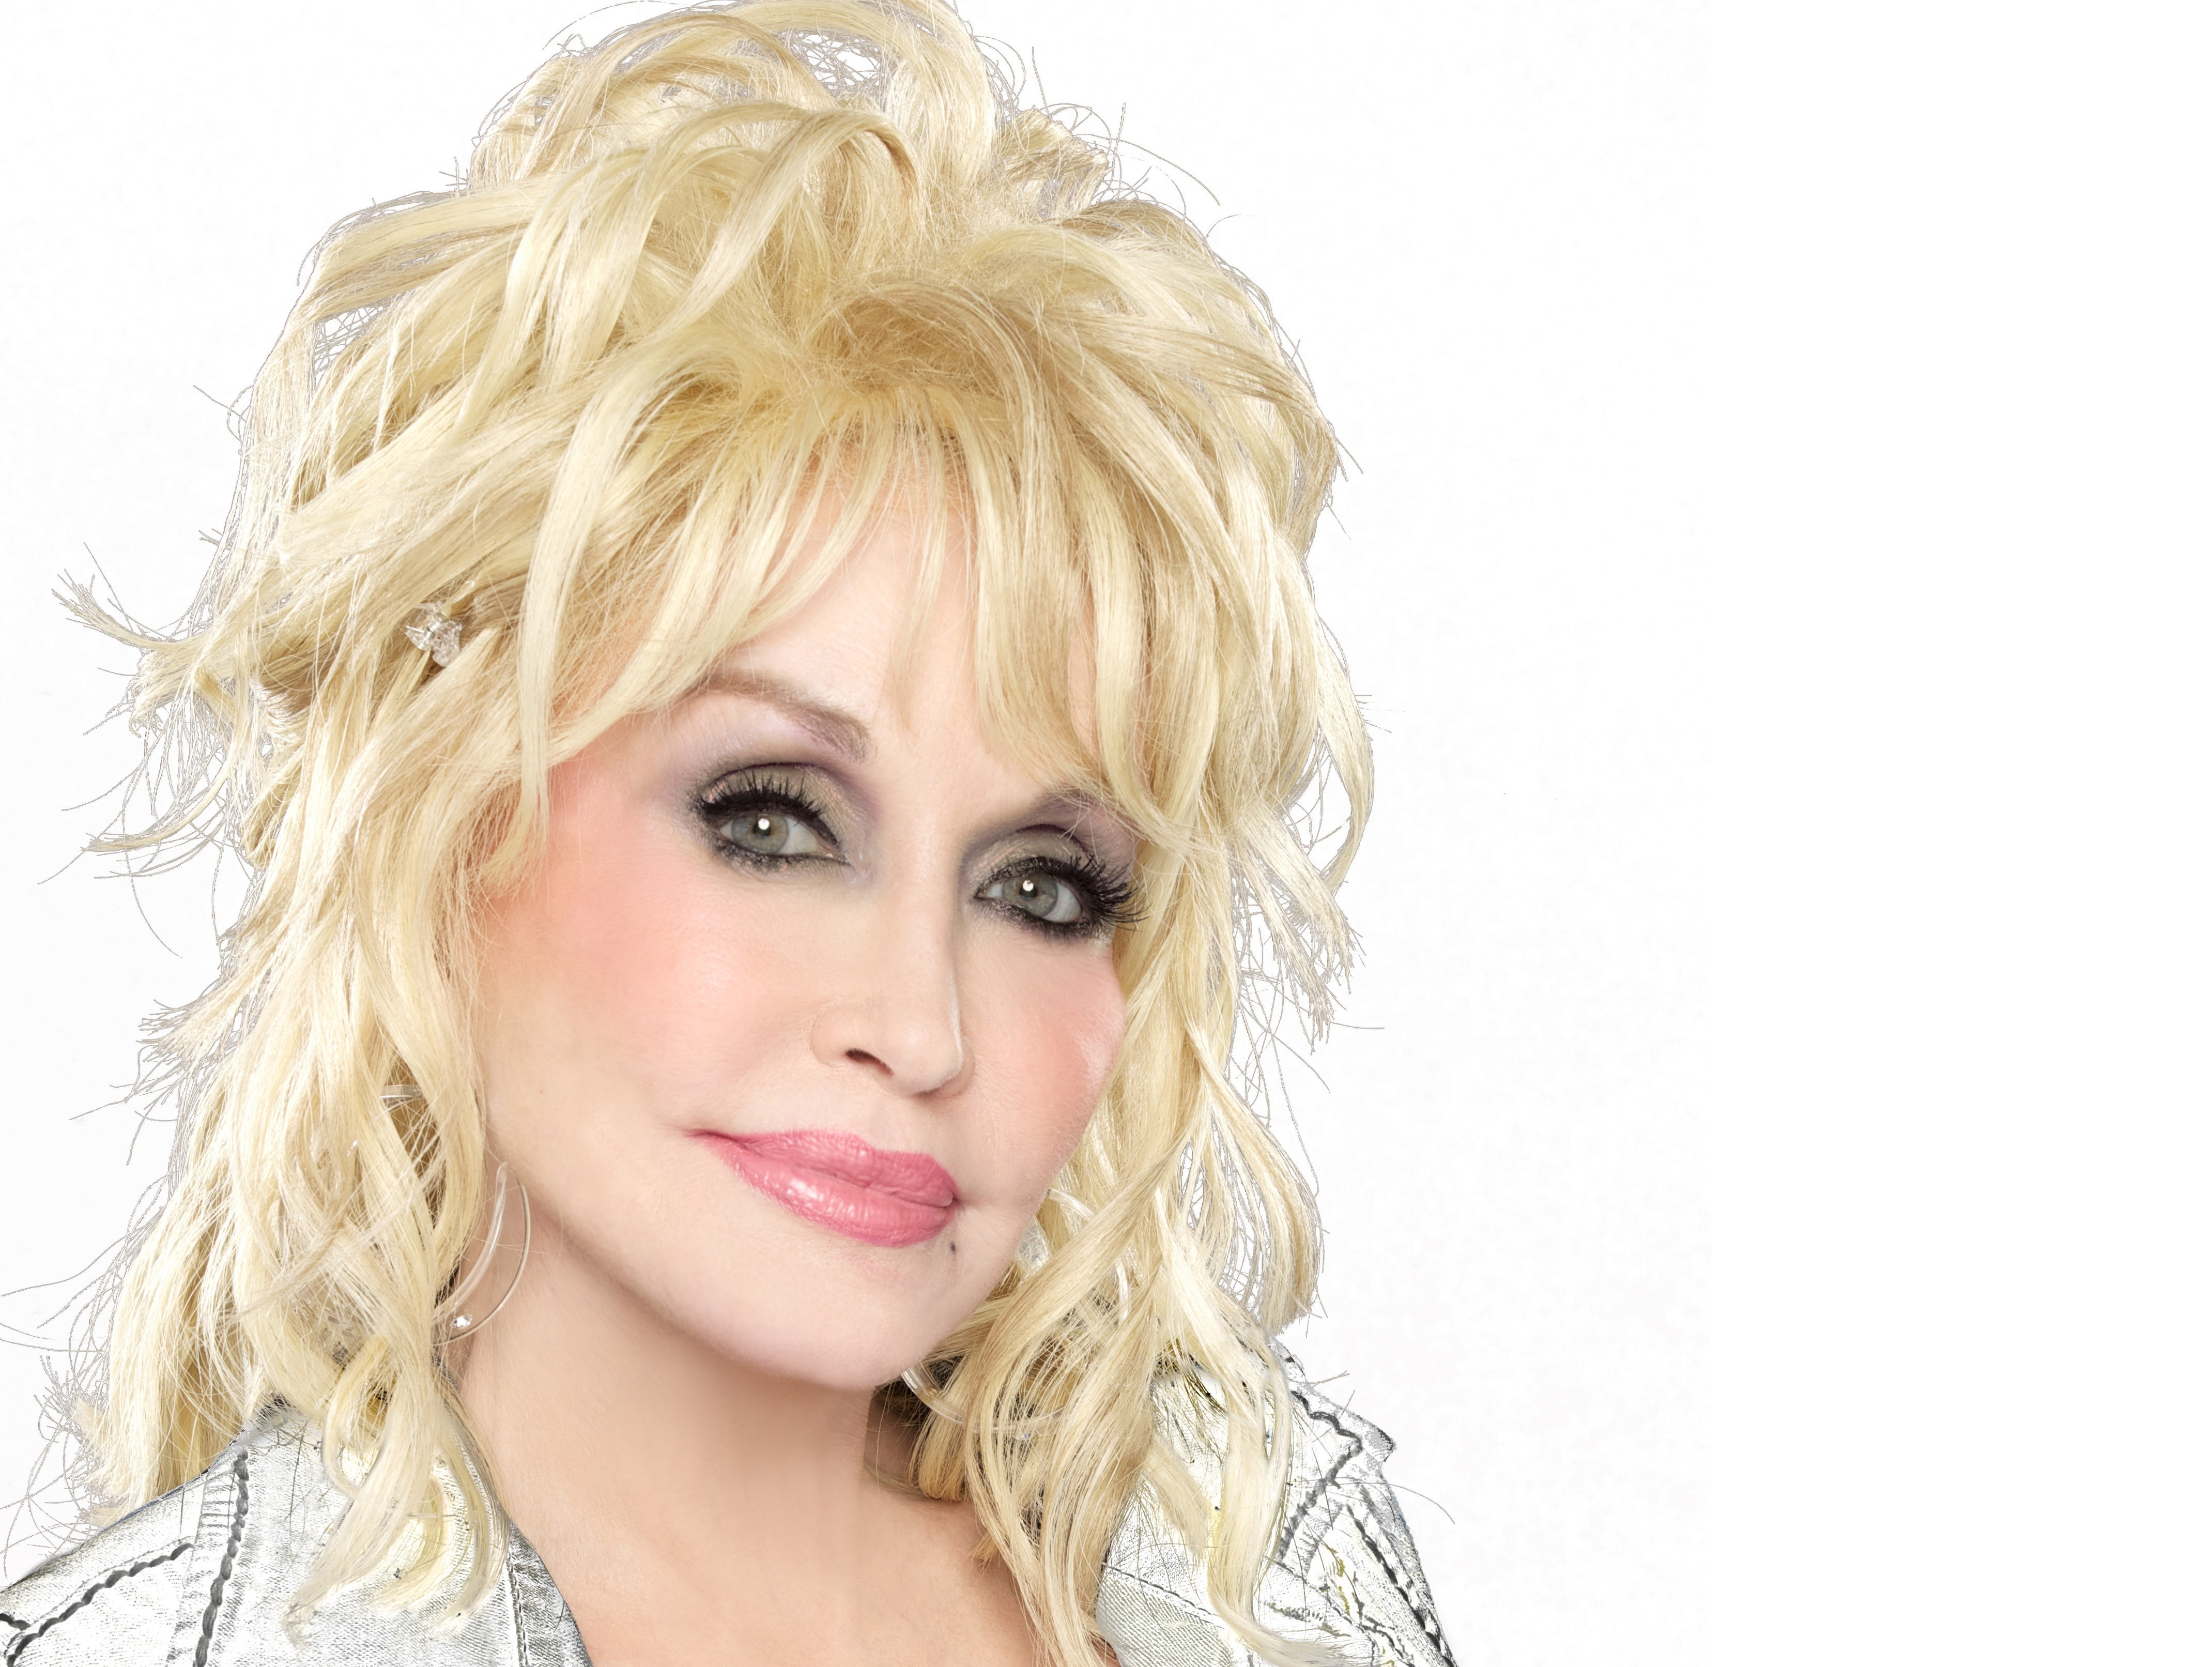 Dolly Parton Background